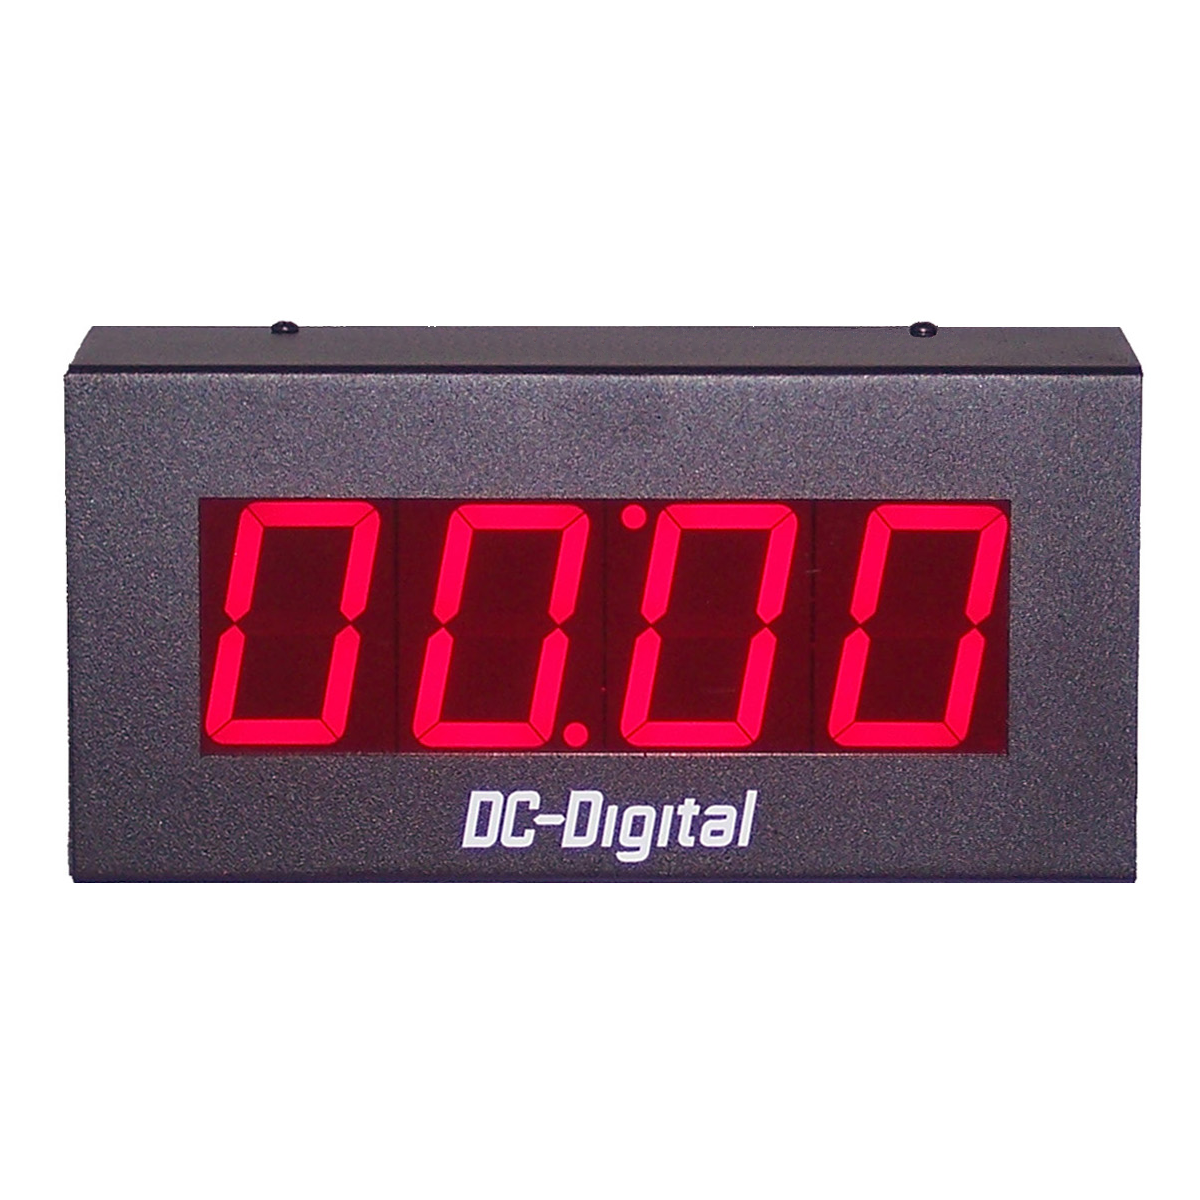 DC-25T-UP-Term-2.3-Inch-Digit-Count-Up-Timer-Terminal-Block